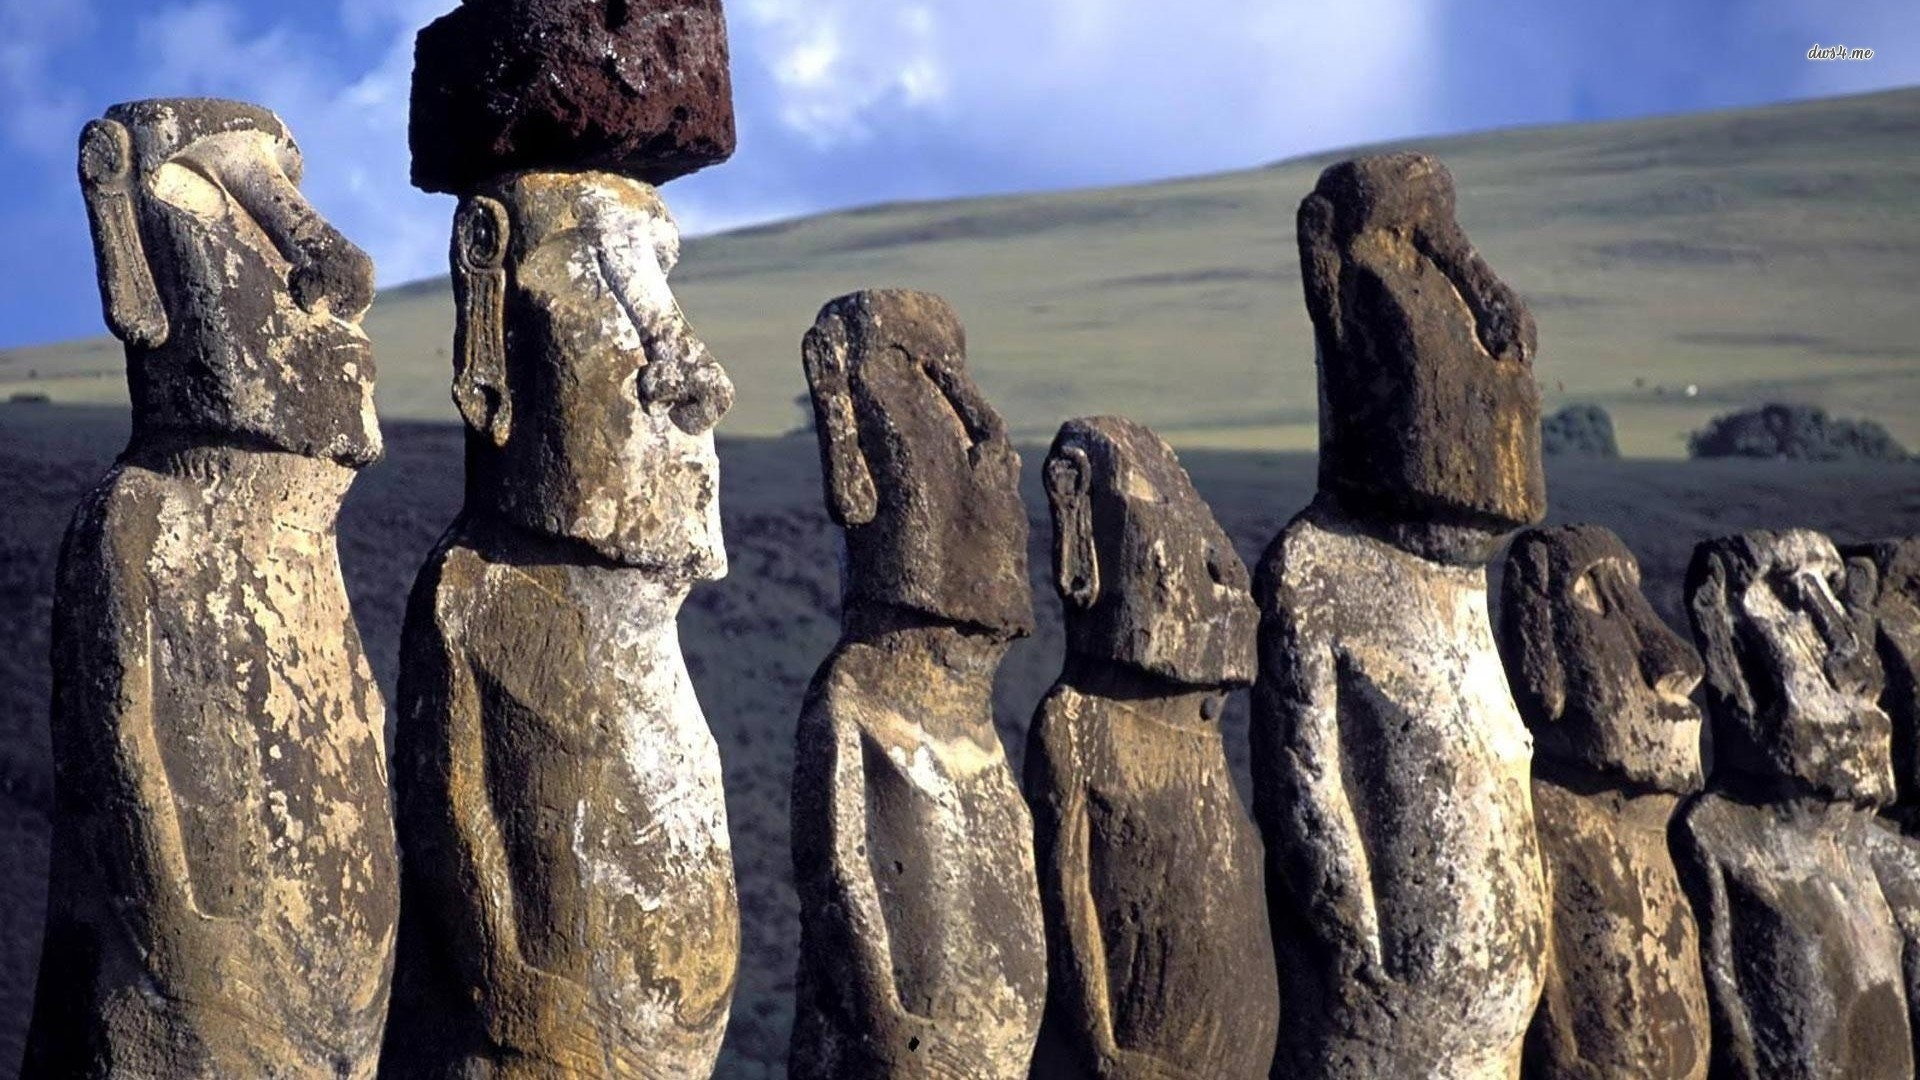 Res: 1920x1080, easter island moai statues